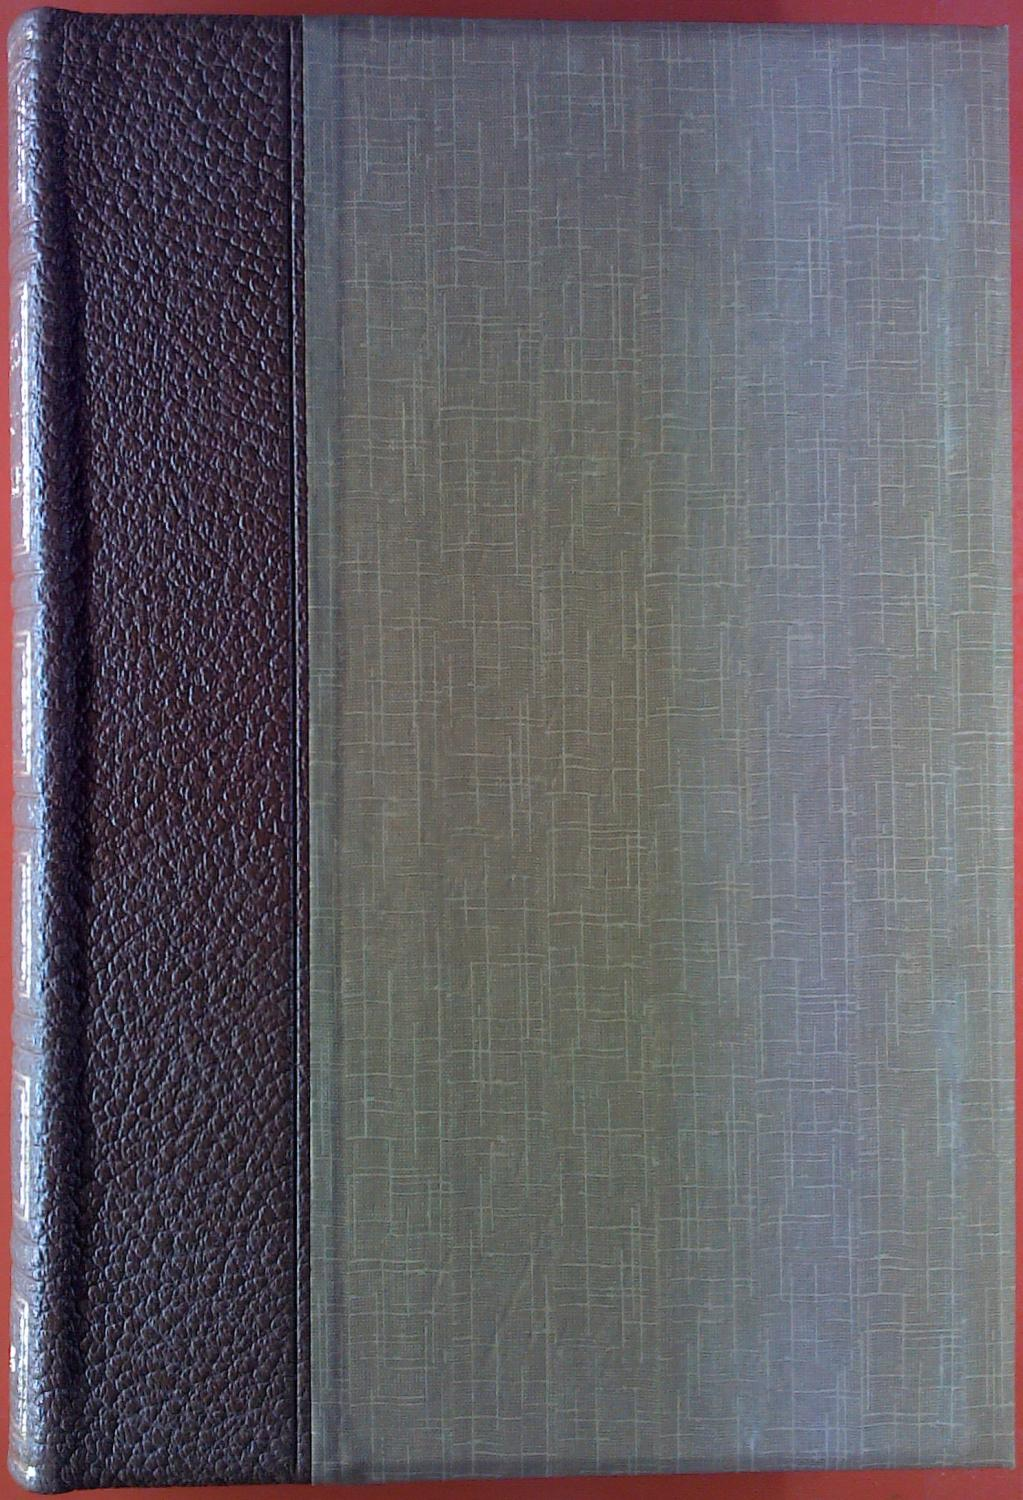 The Business Correspondence.: Thos. H. Lewis